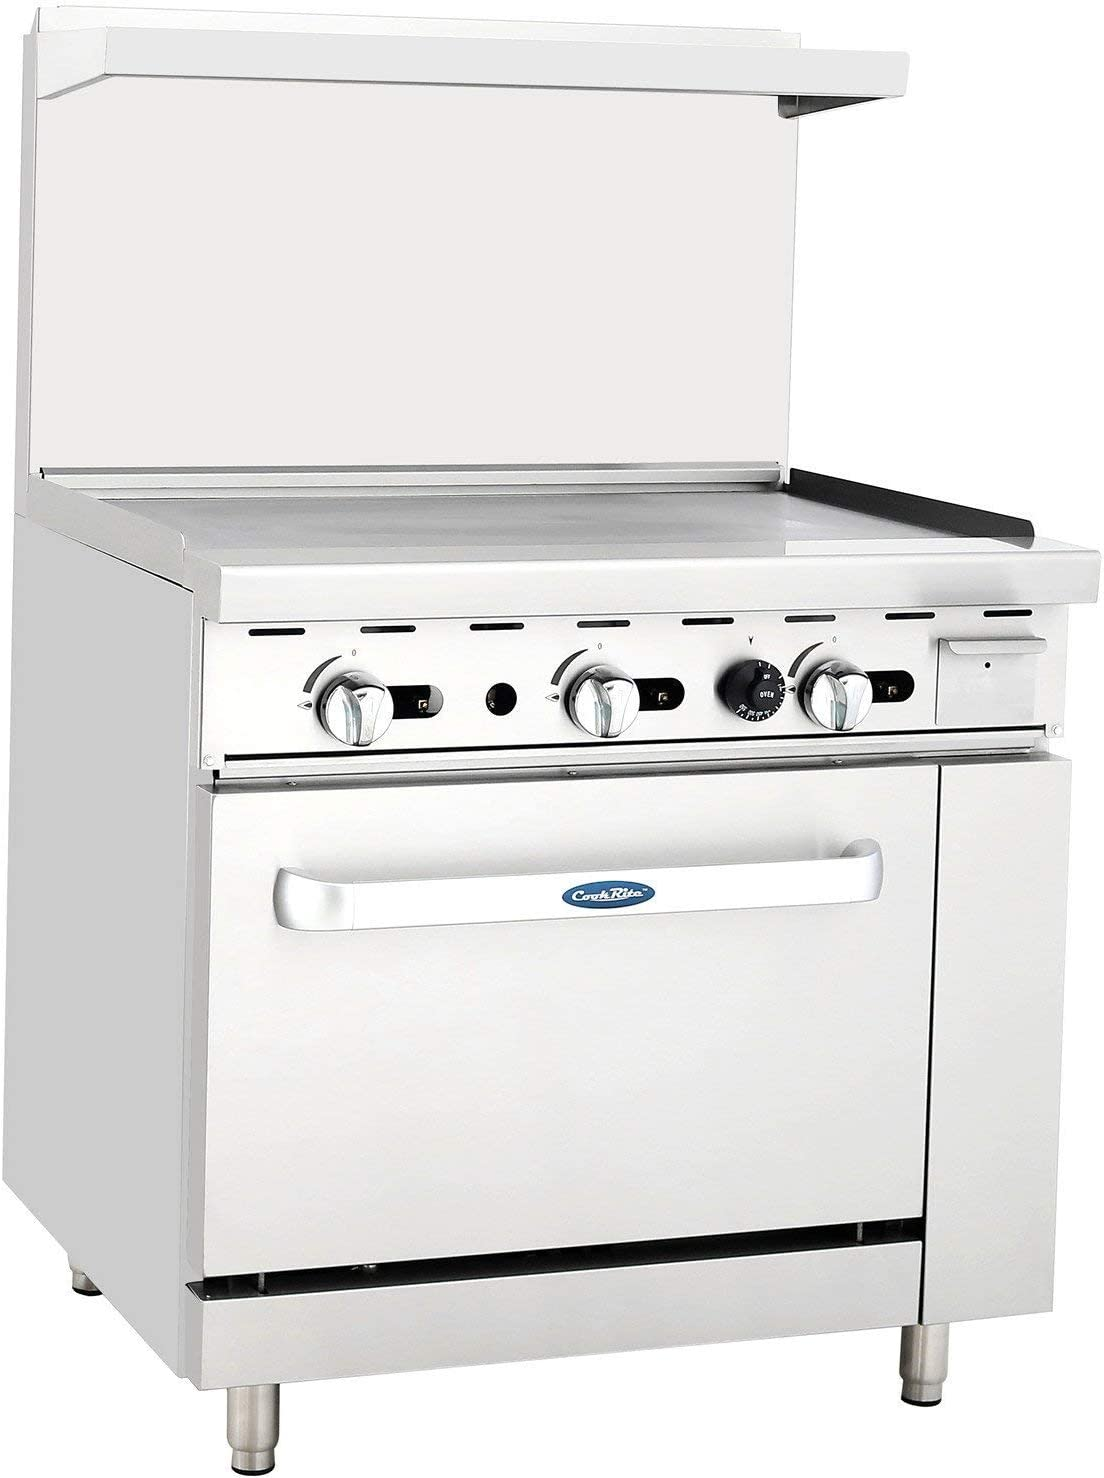 ATOSA US ATO-36G Today's only Commercial Shipping included Restaurant Ste Griddle Stainless 36